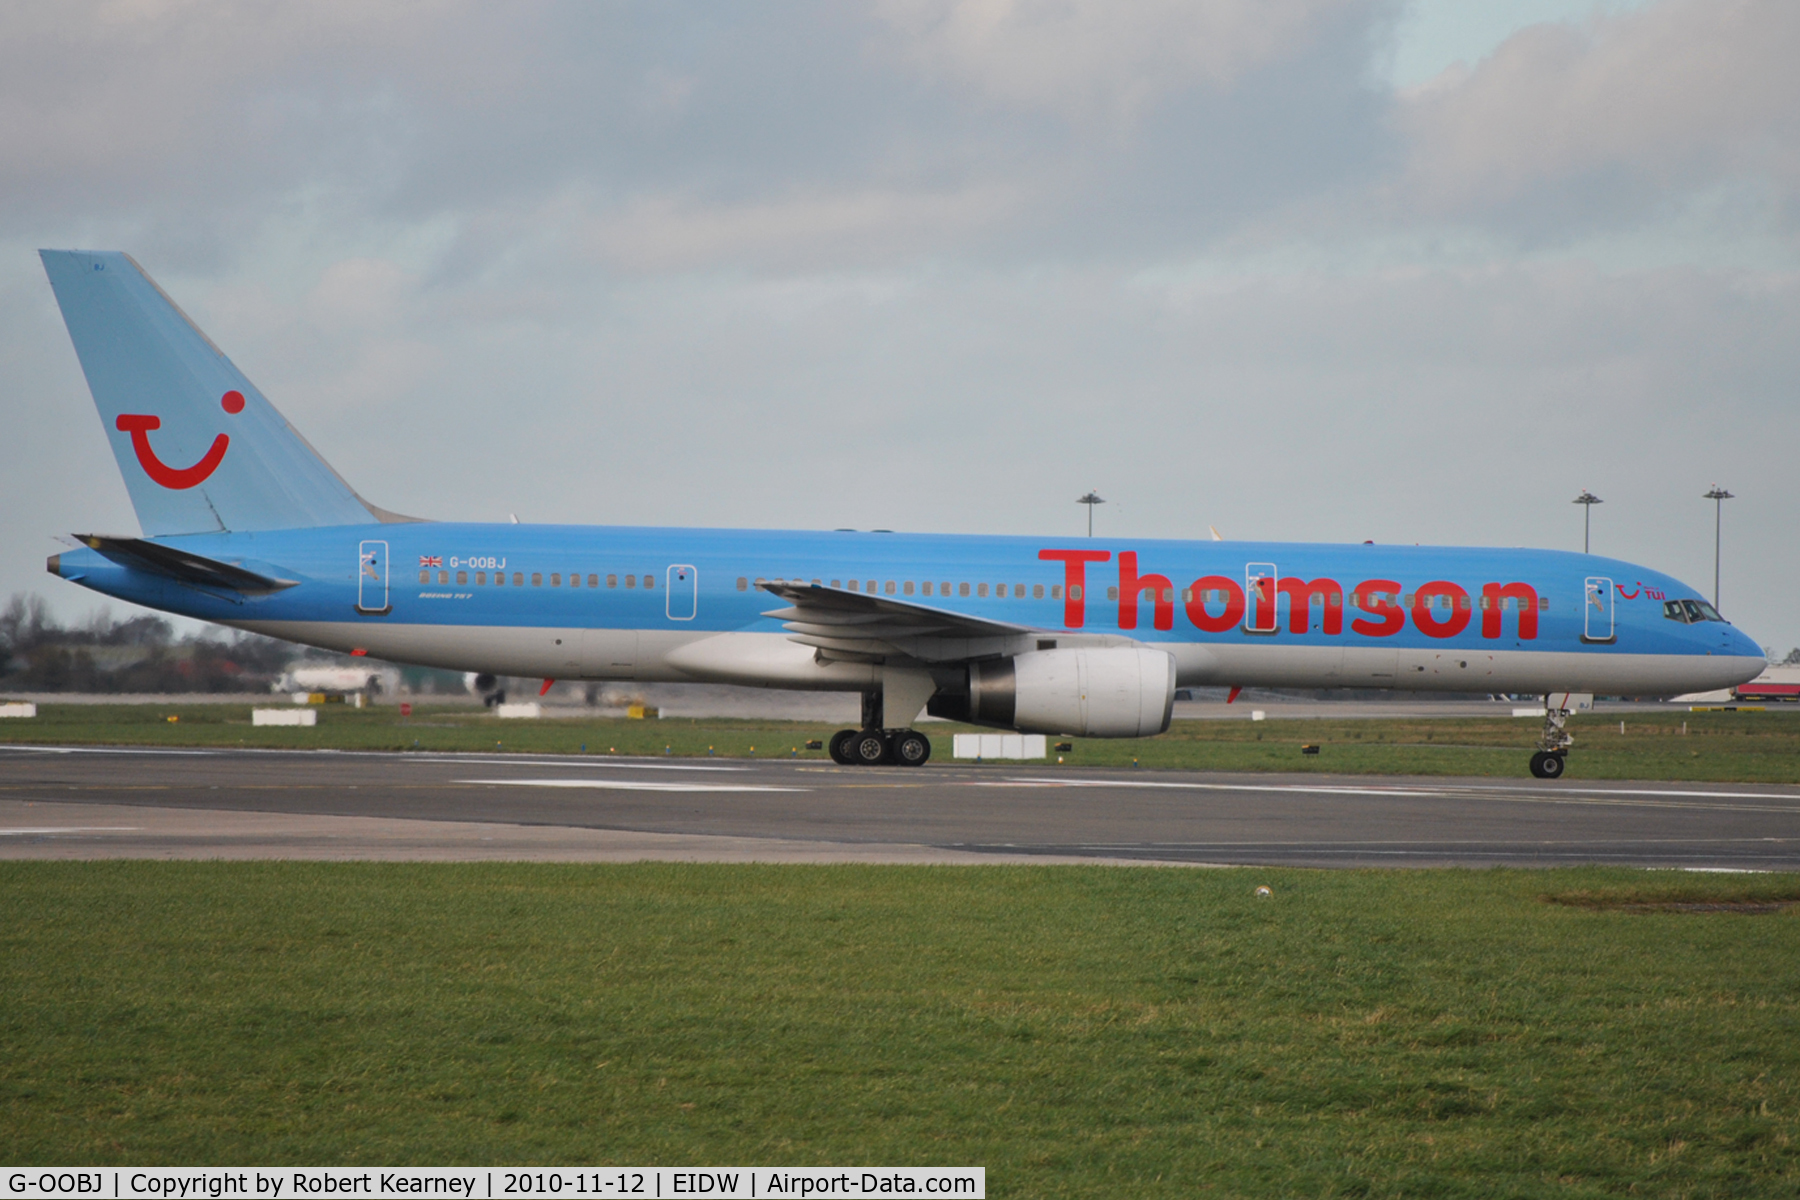 G-OOBJ, 1993 Boeing 757-2B7 C/N 27147, Thomson heading to stand